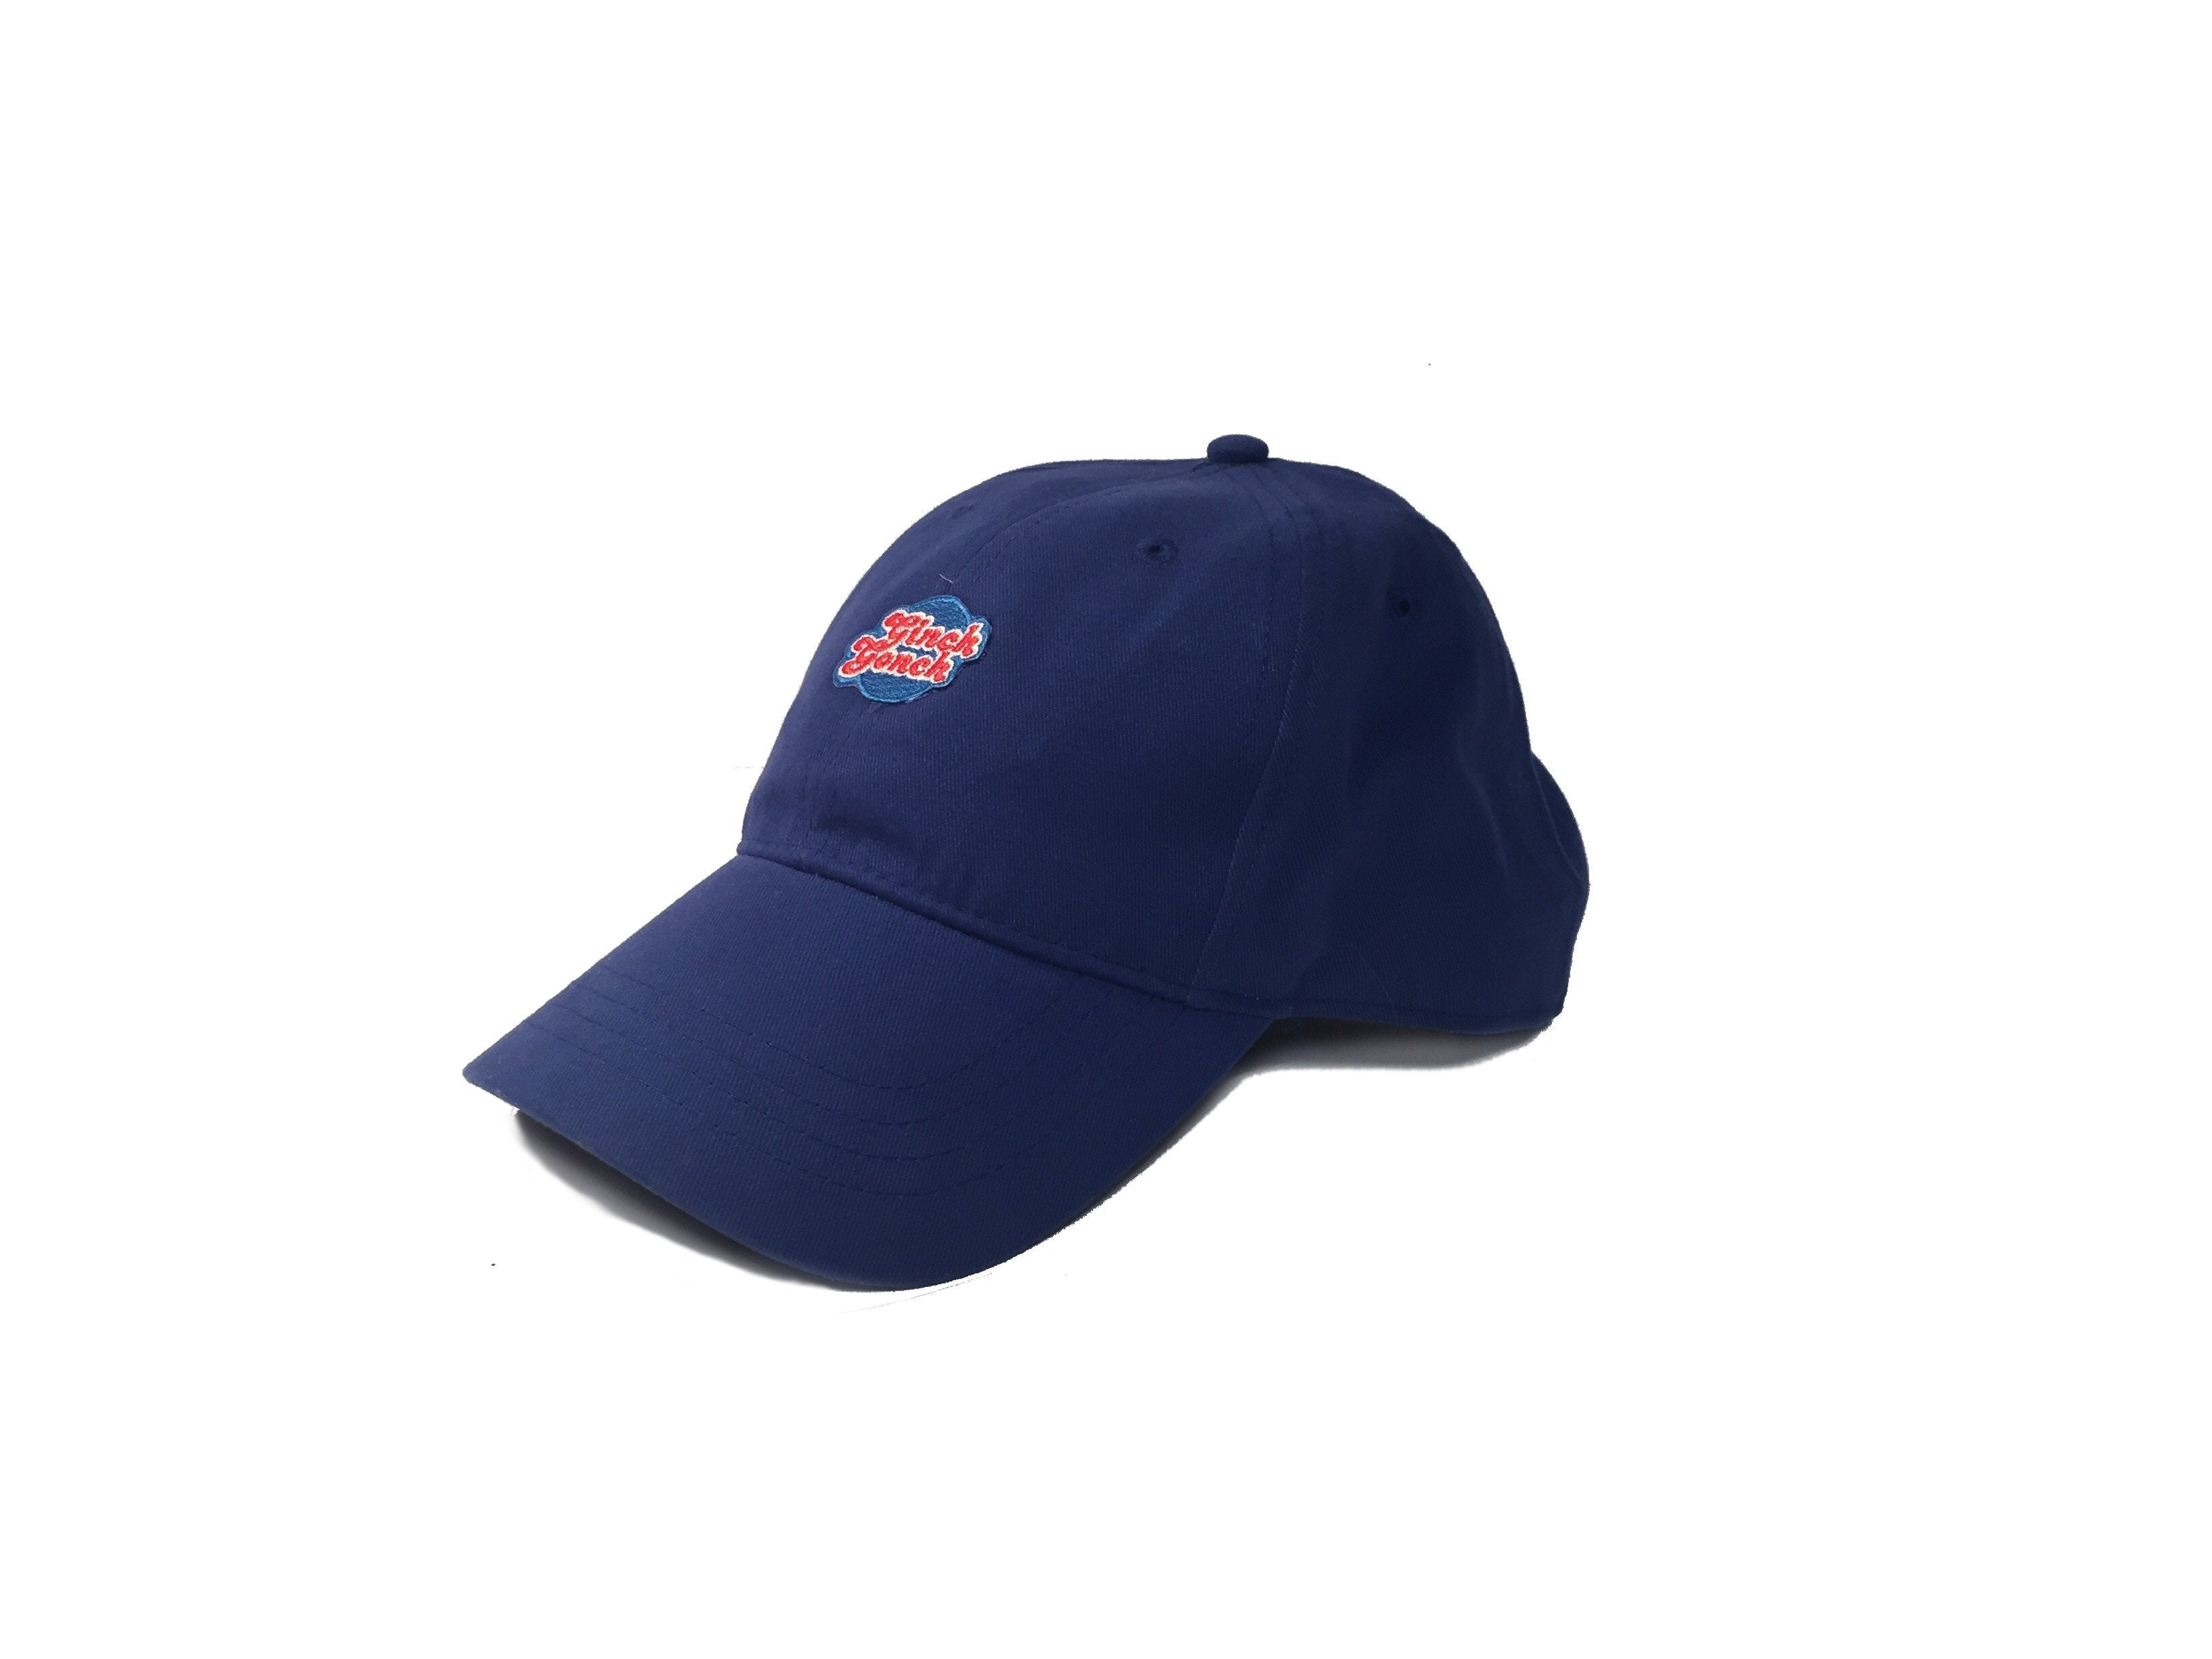 GG Blue Hat